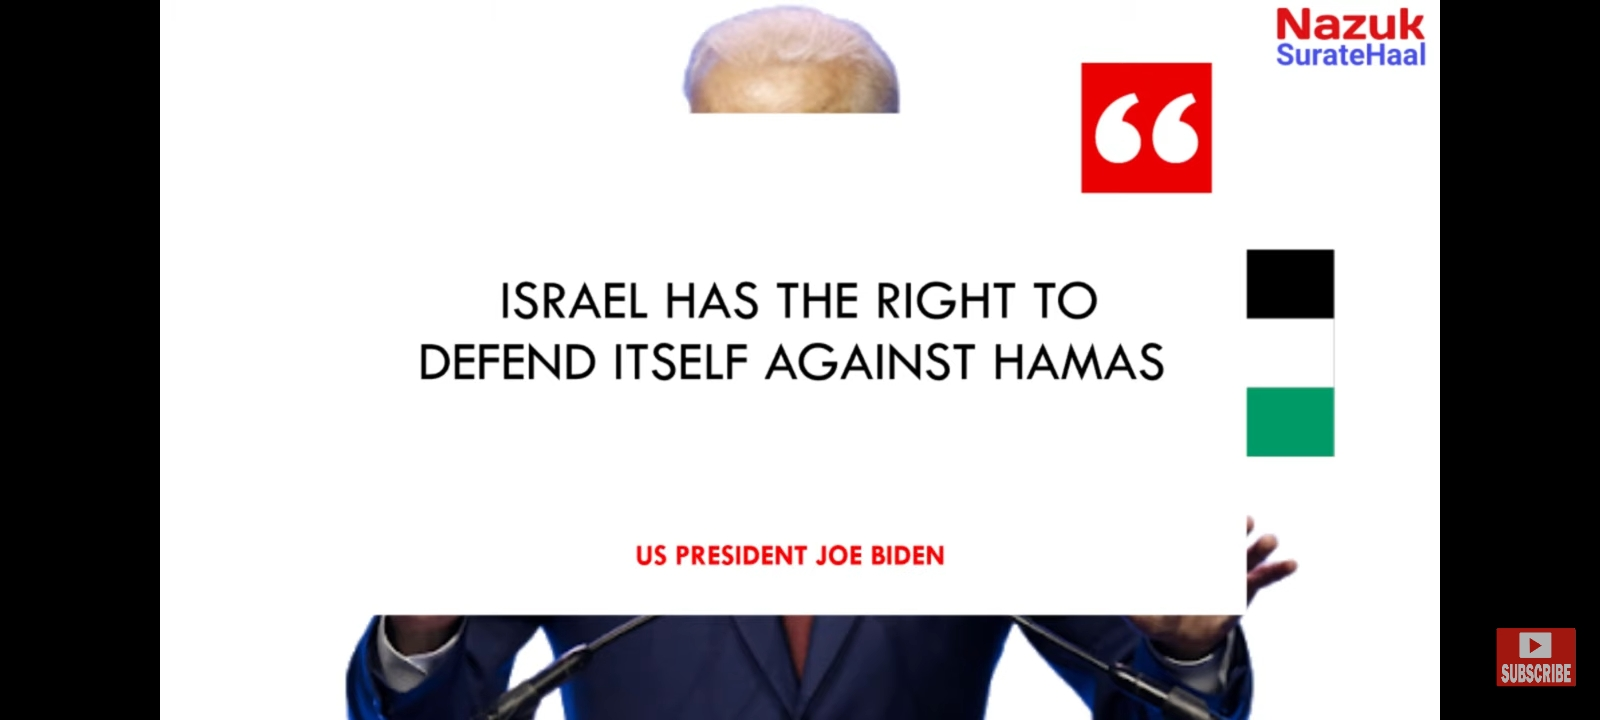 Biden has said that Israel has the right to defend itself against Hamas.